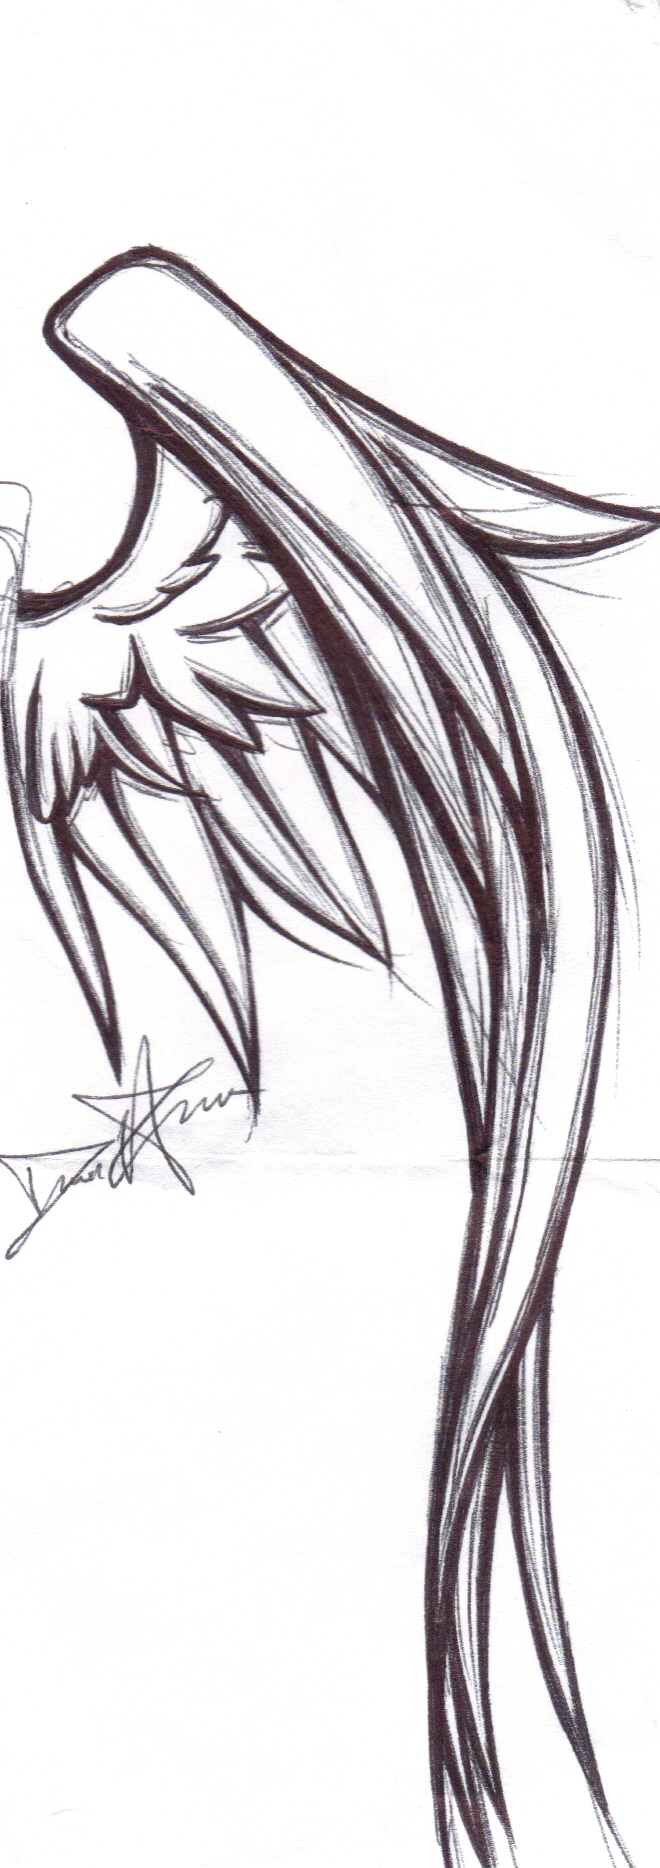 Vampire tattoos picture tattoo ideas shoulder tattoos for Wing tattoo ideas